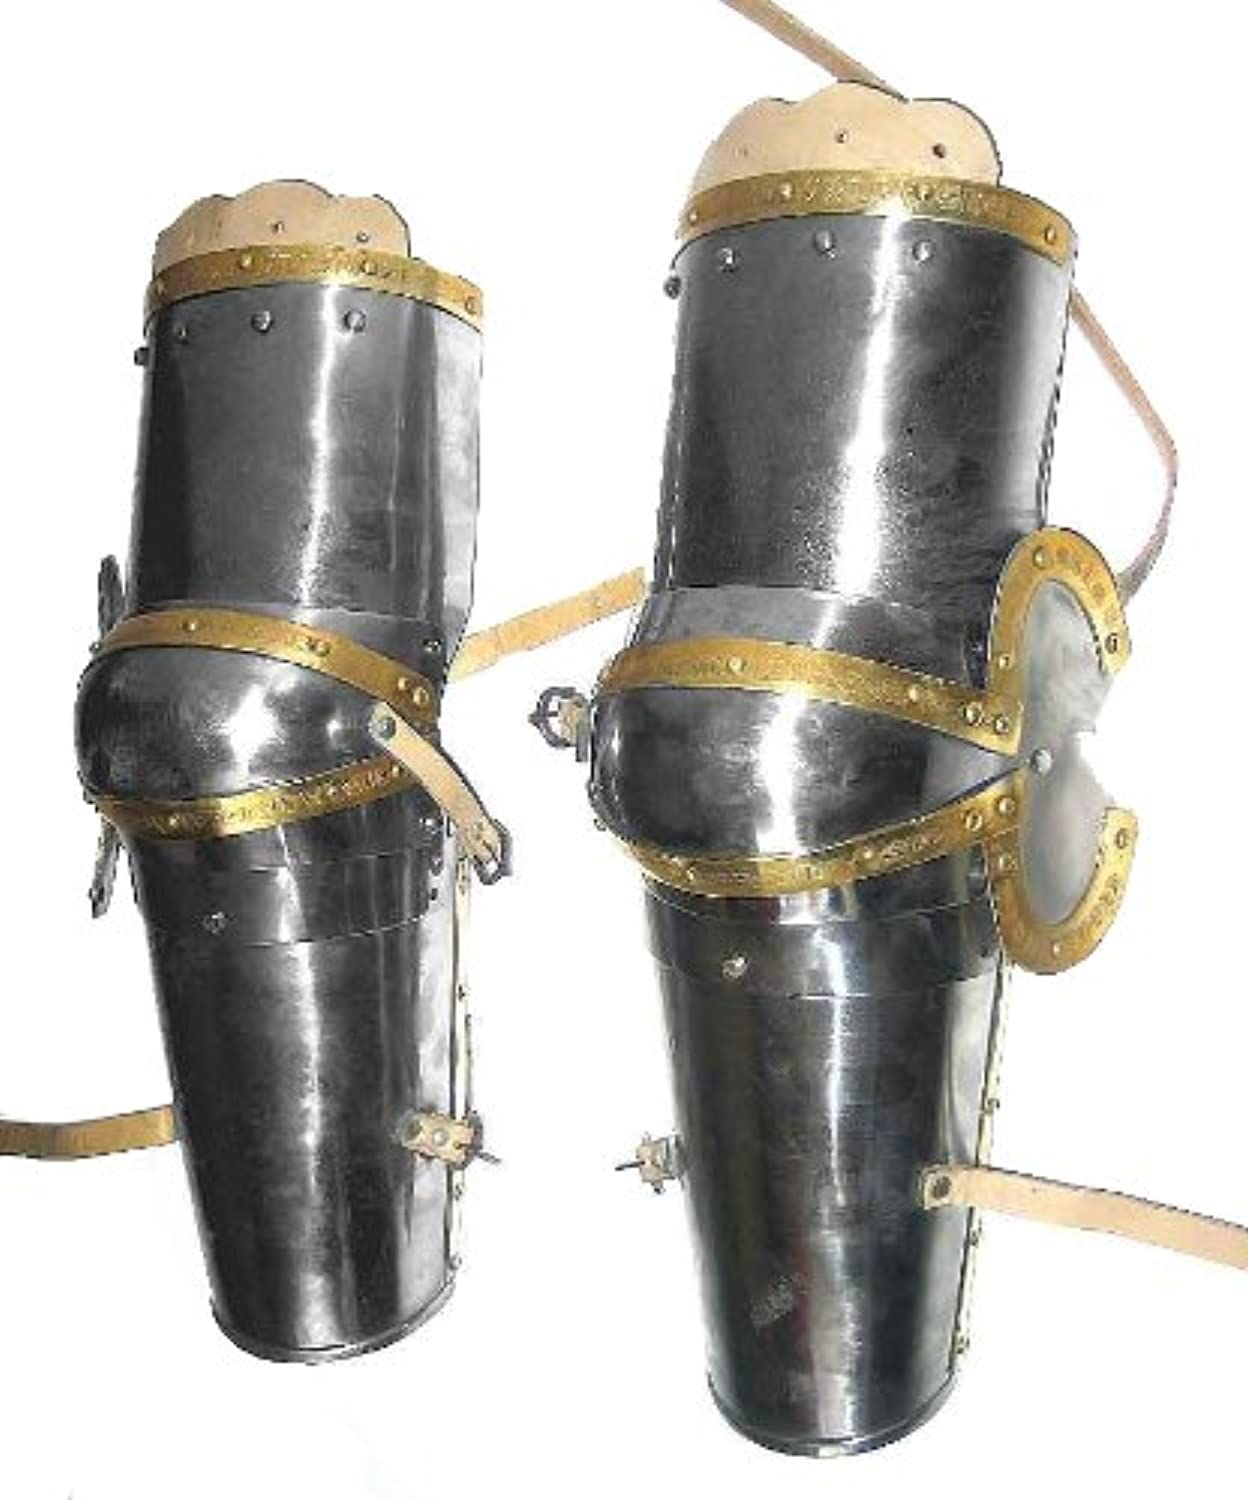 Churburg Arms   Medieval Steel Arm Guards   Fancy Dress Costume   Reenactment   LARP   Role-play   Fancy Dress